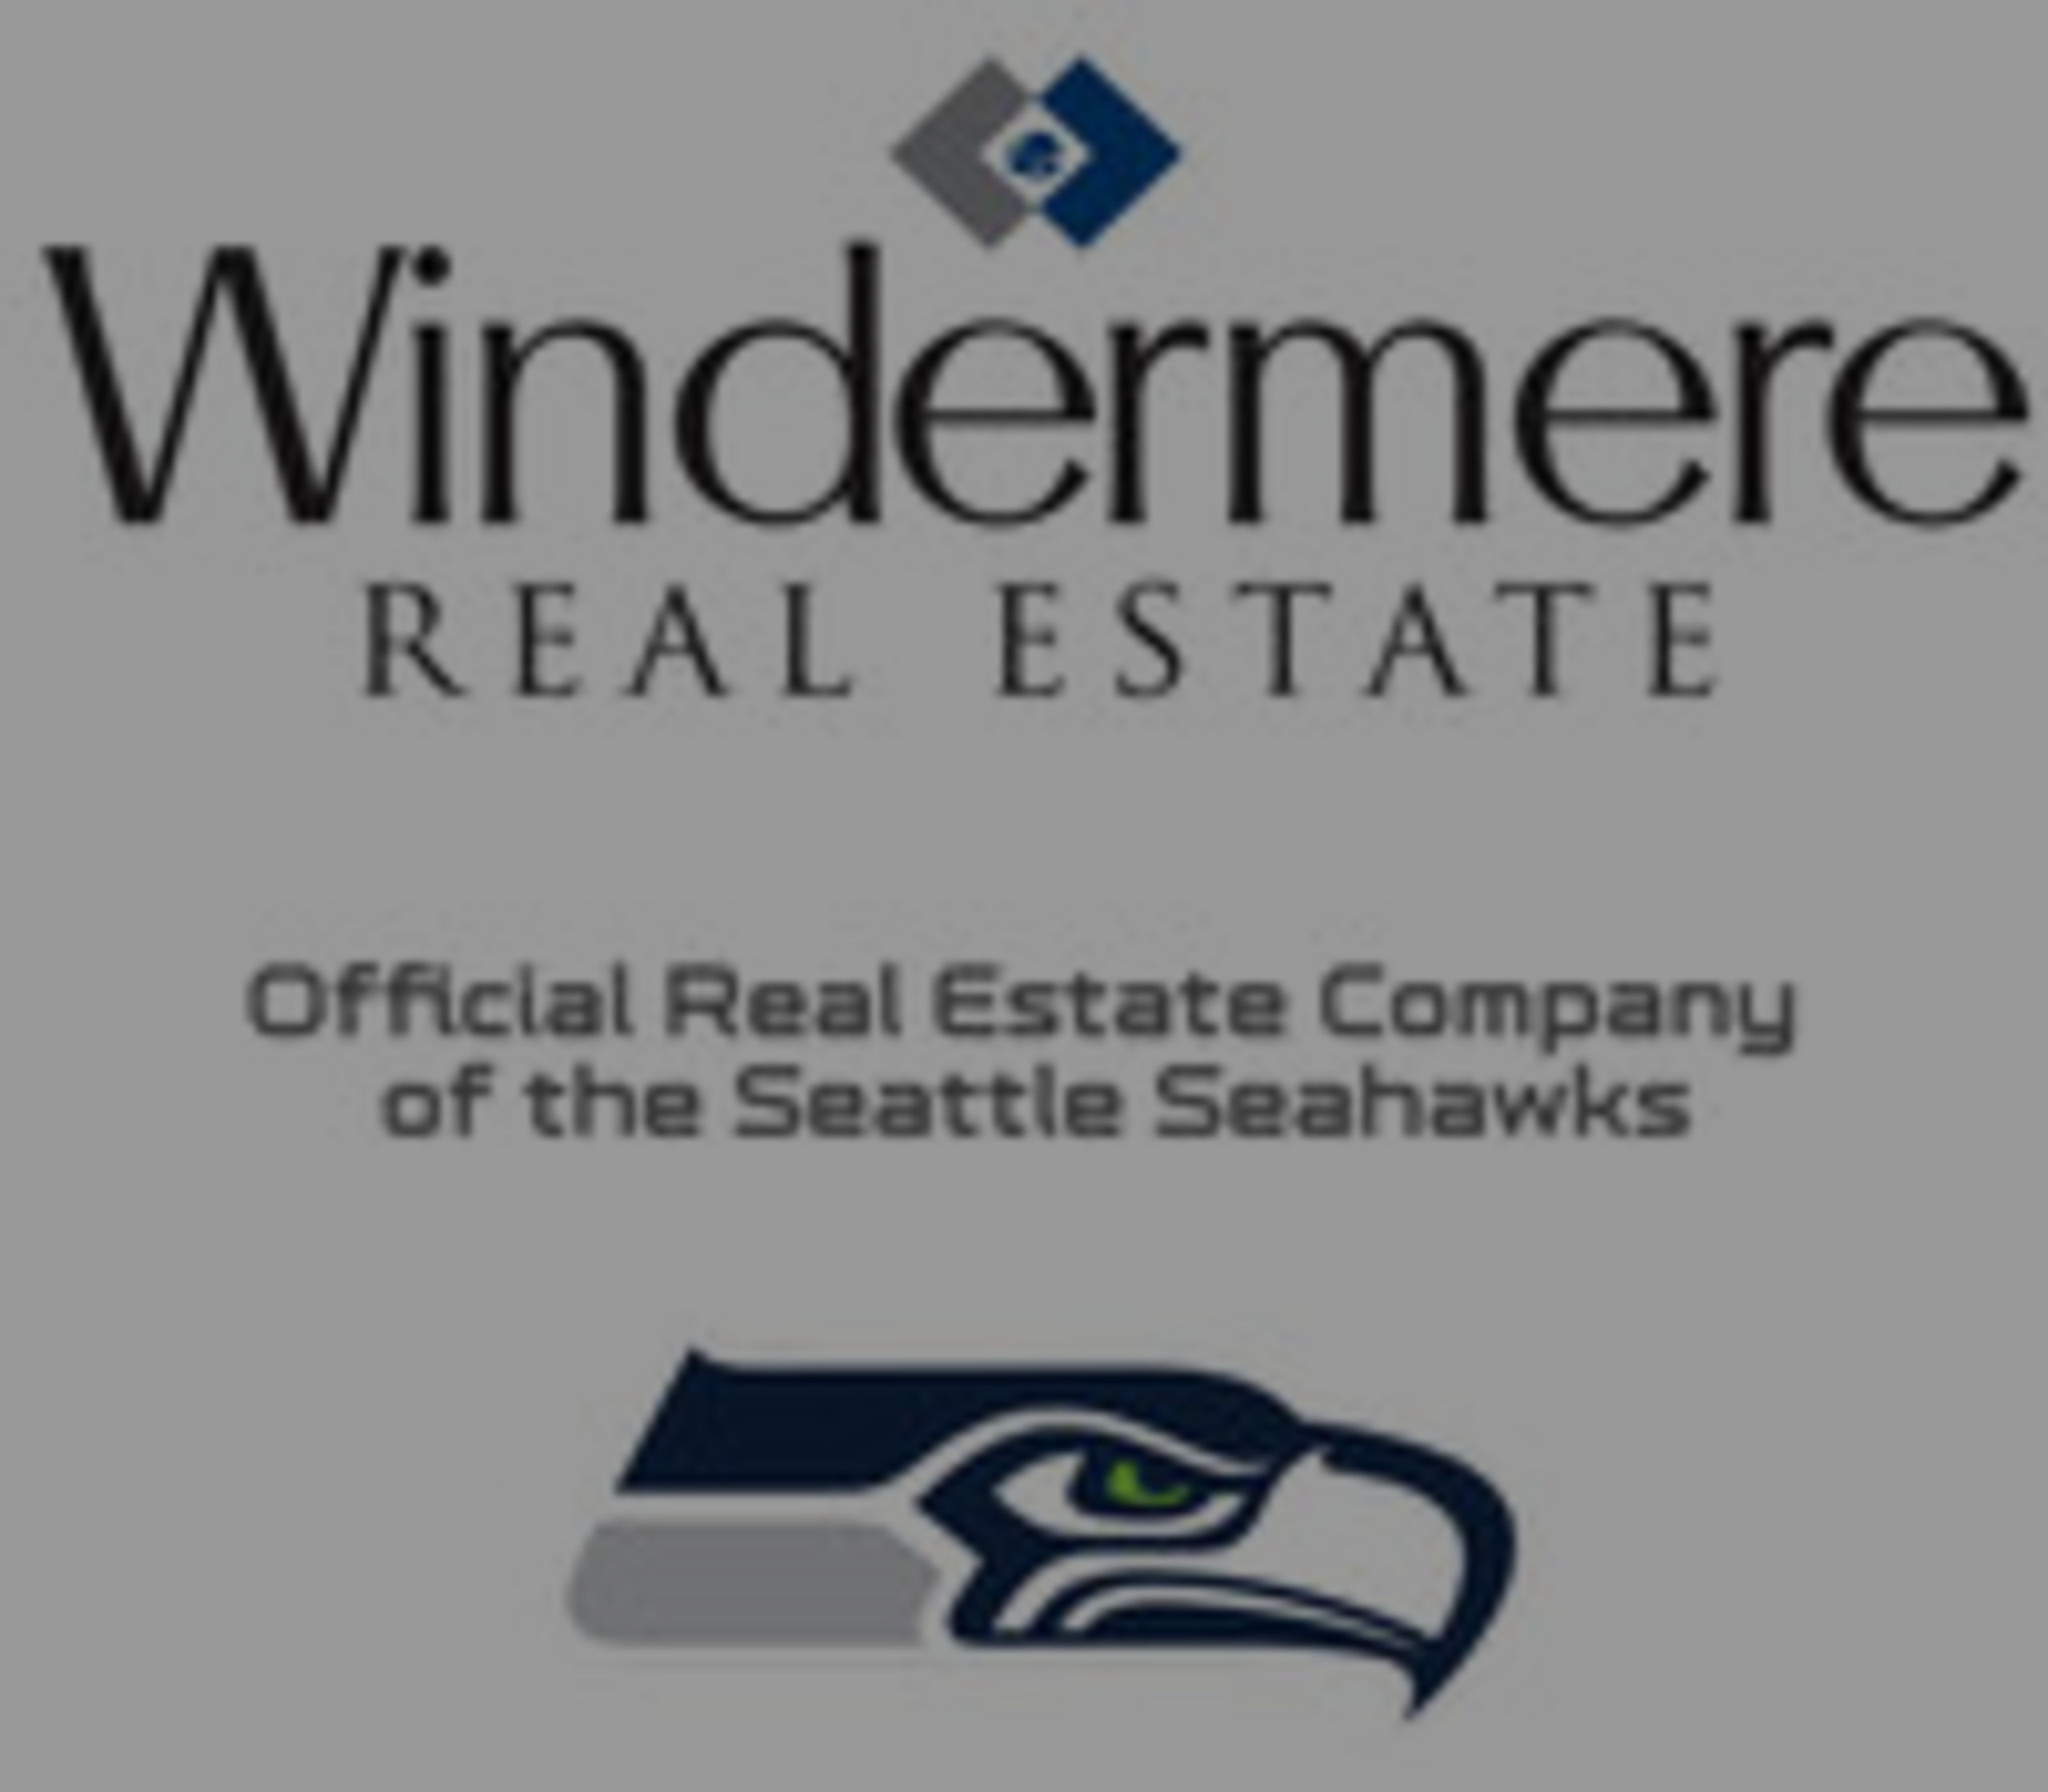 Seattle Seahawks and Windermere Real Estate Announce New Partnership